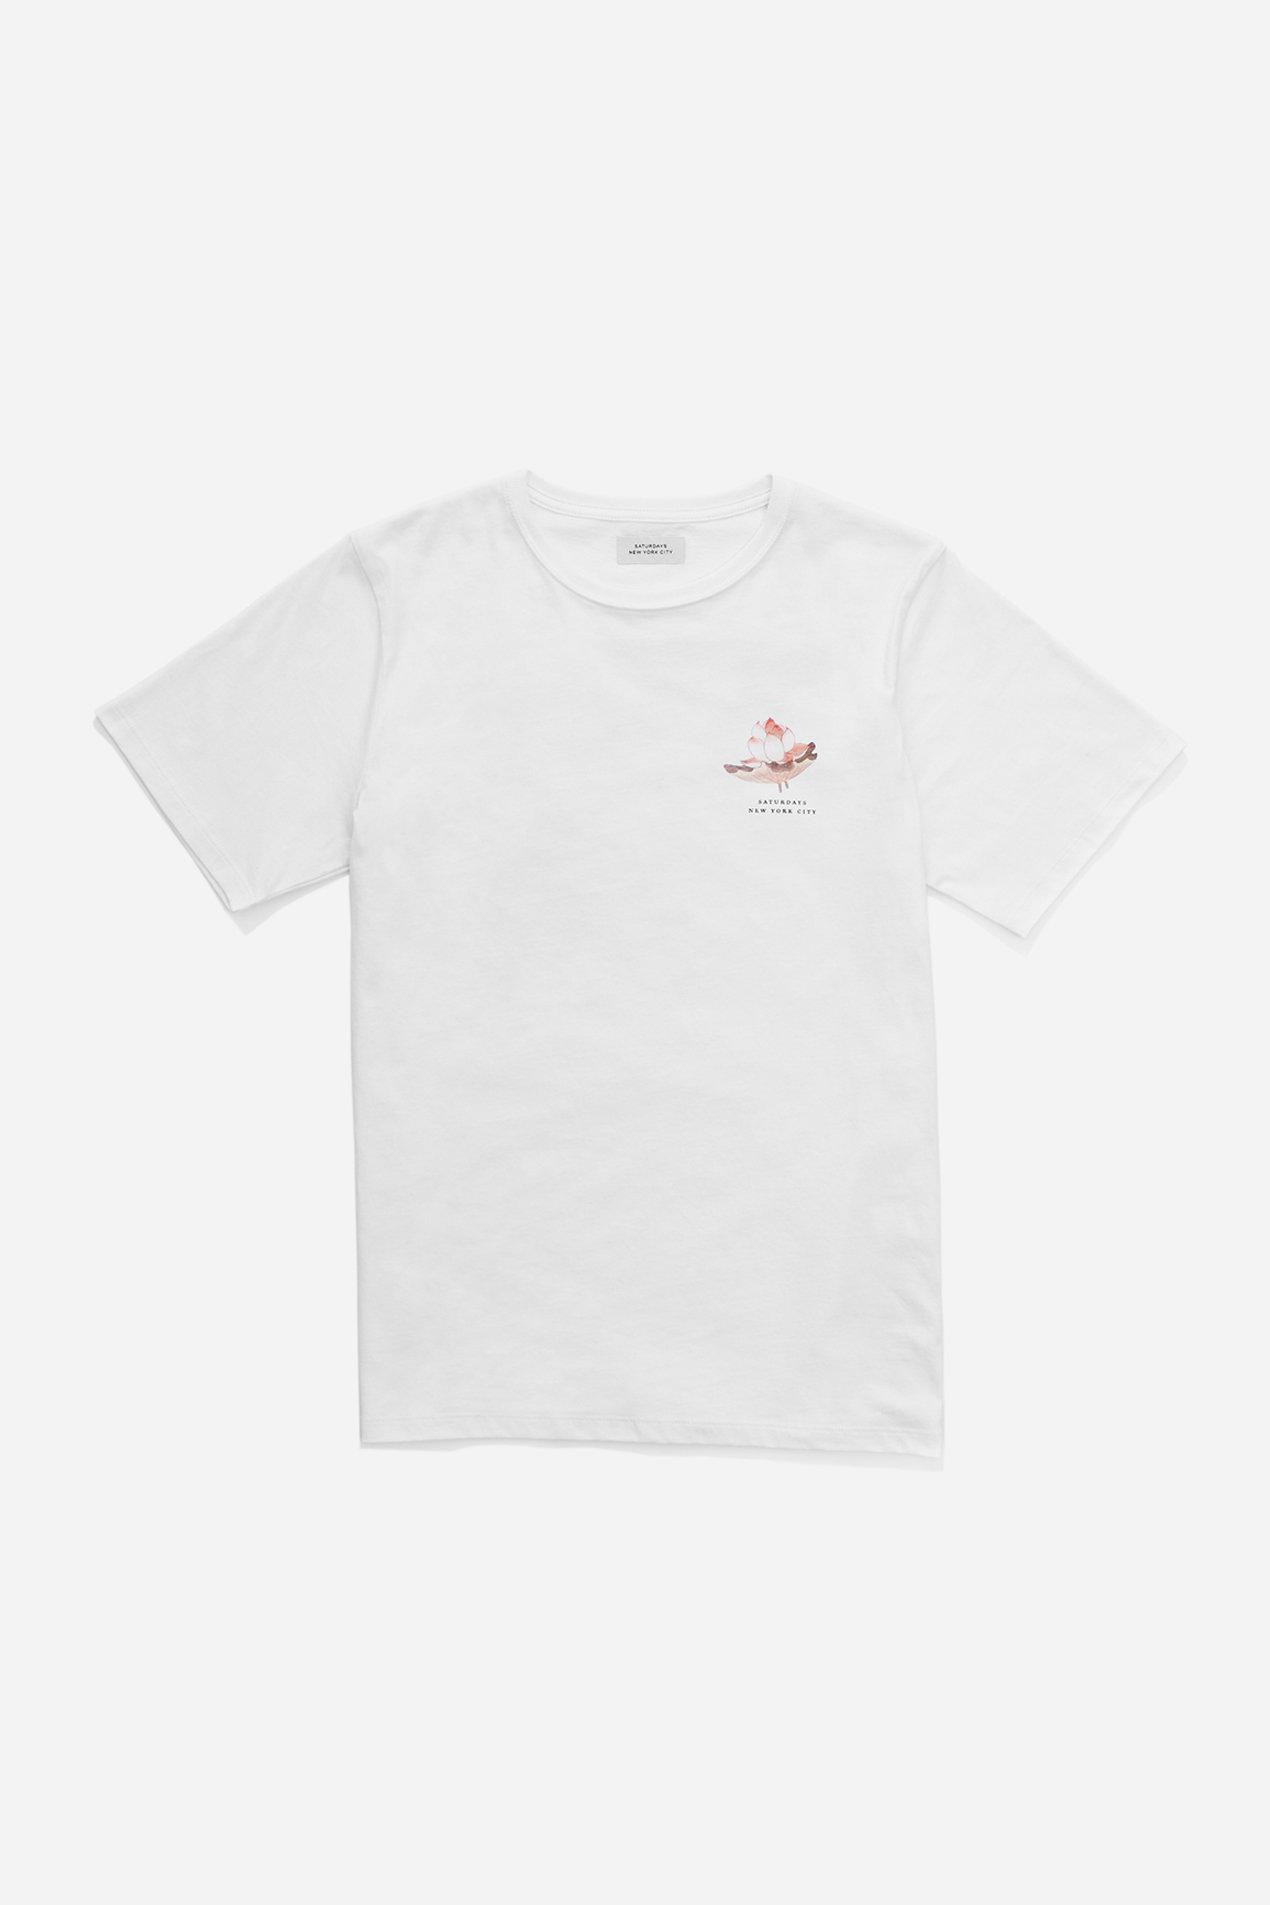 Lyst Saturdays Nyc Lotus Flower T Shirt In White For Men